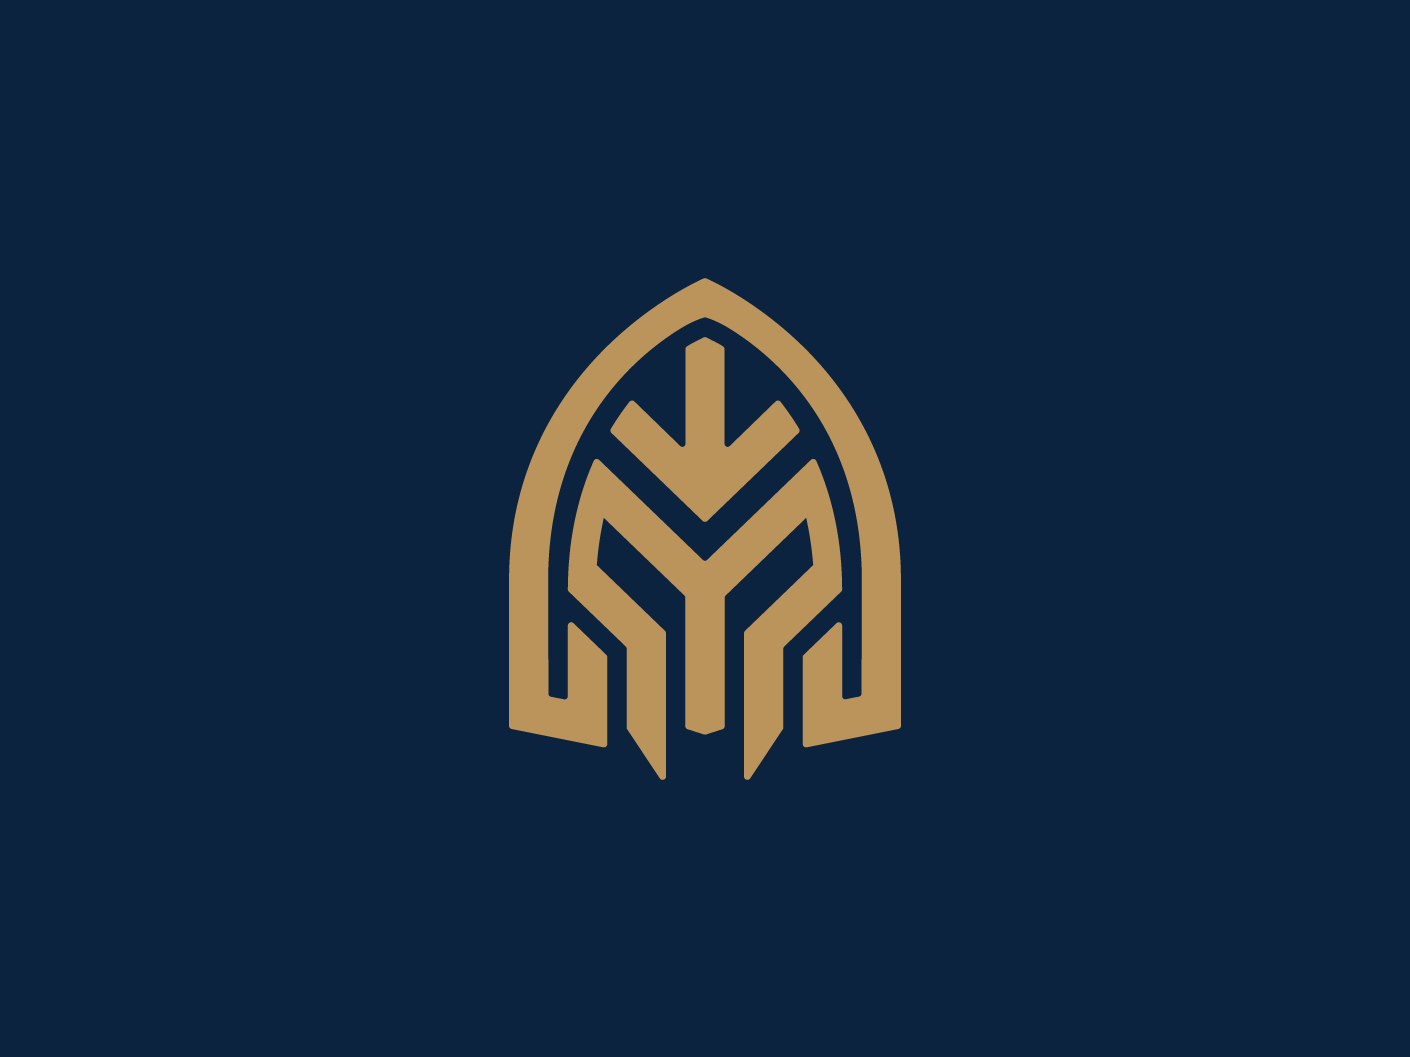 Armour Logo by Vitor Mateus on Dribbble.